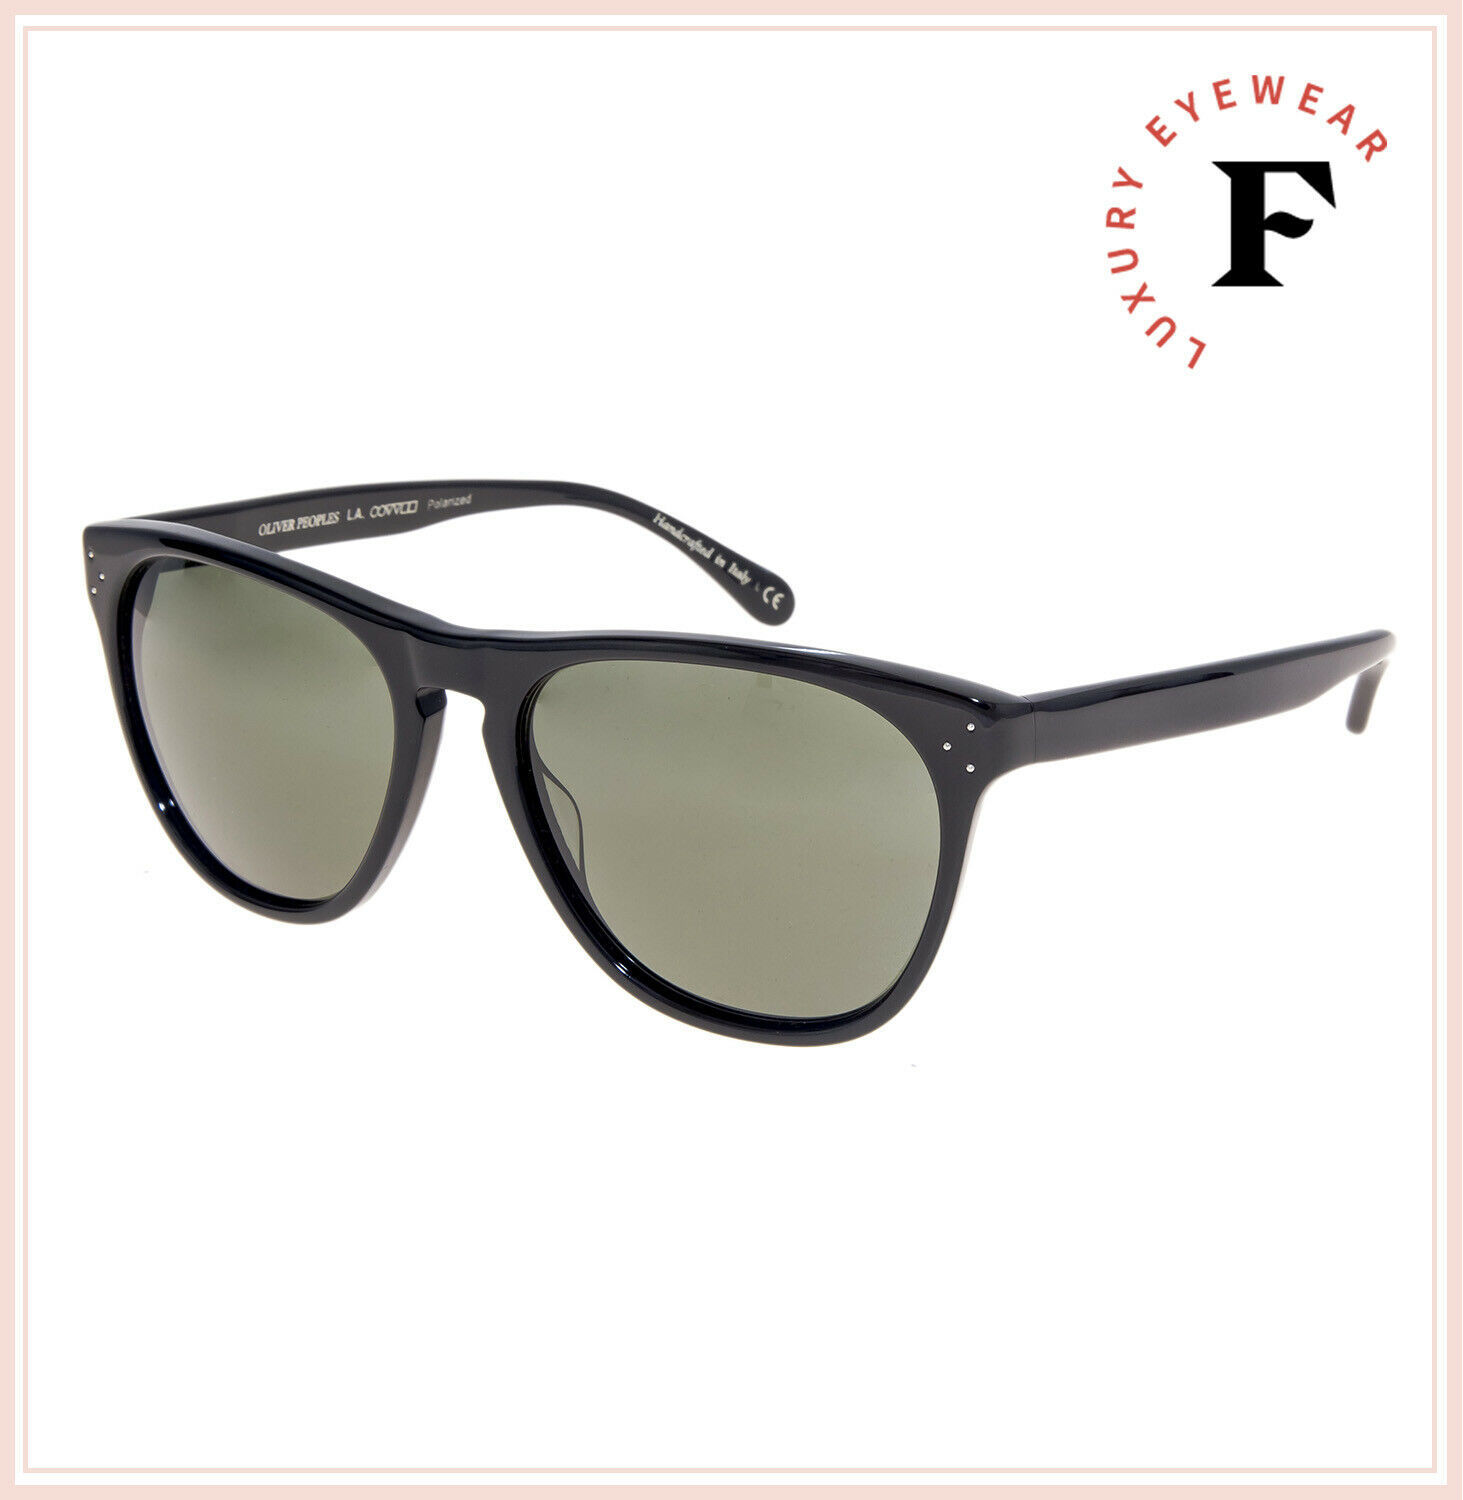 Oliver Peoples 5091 DADDY B Black Green Polarized Vintage Sunglasses OV5091S image 4